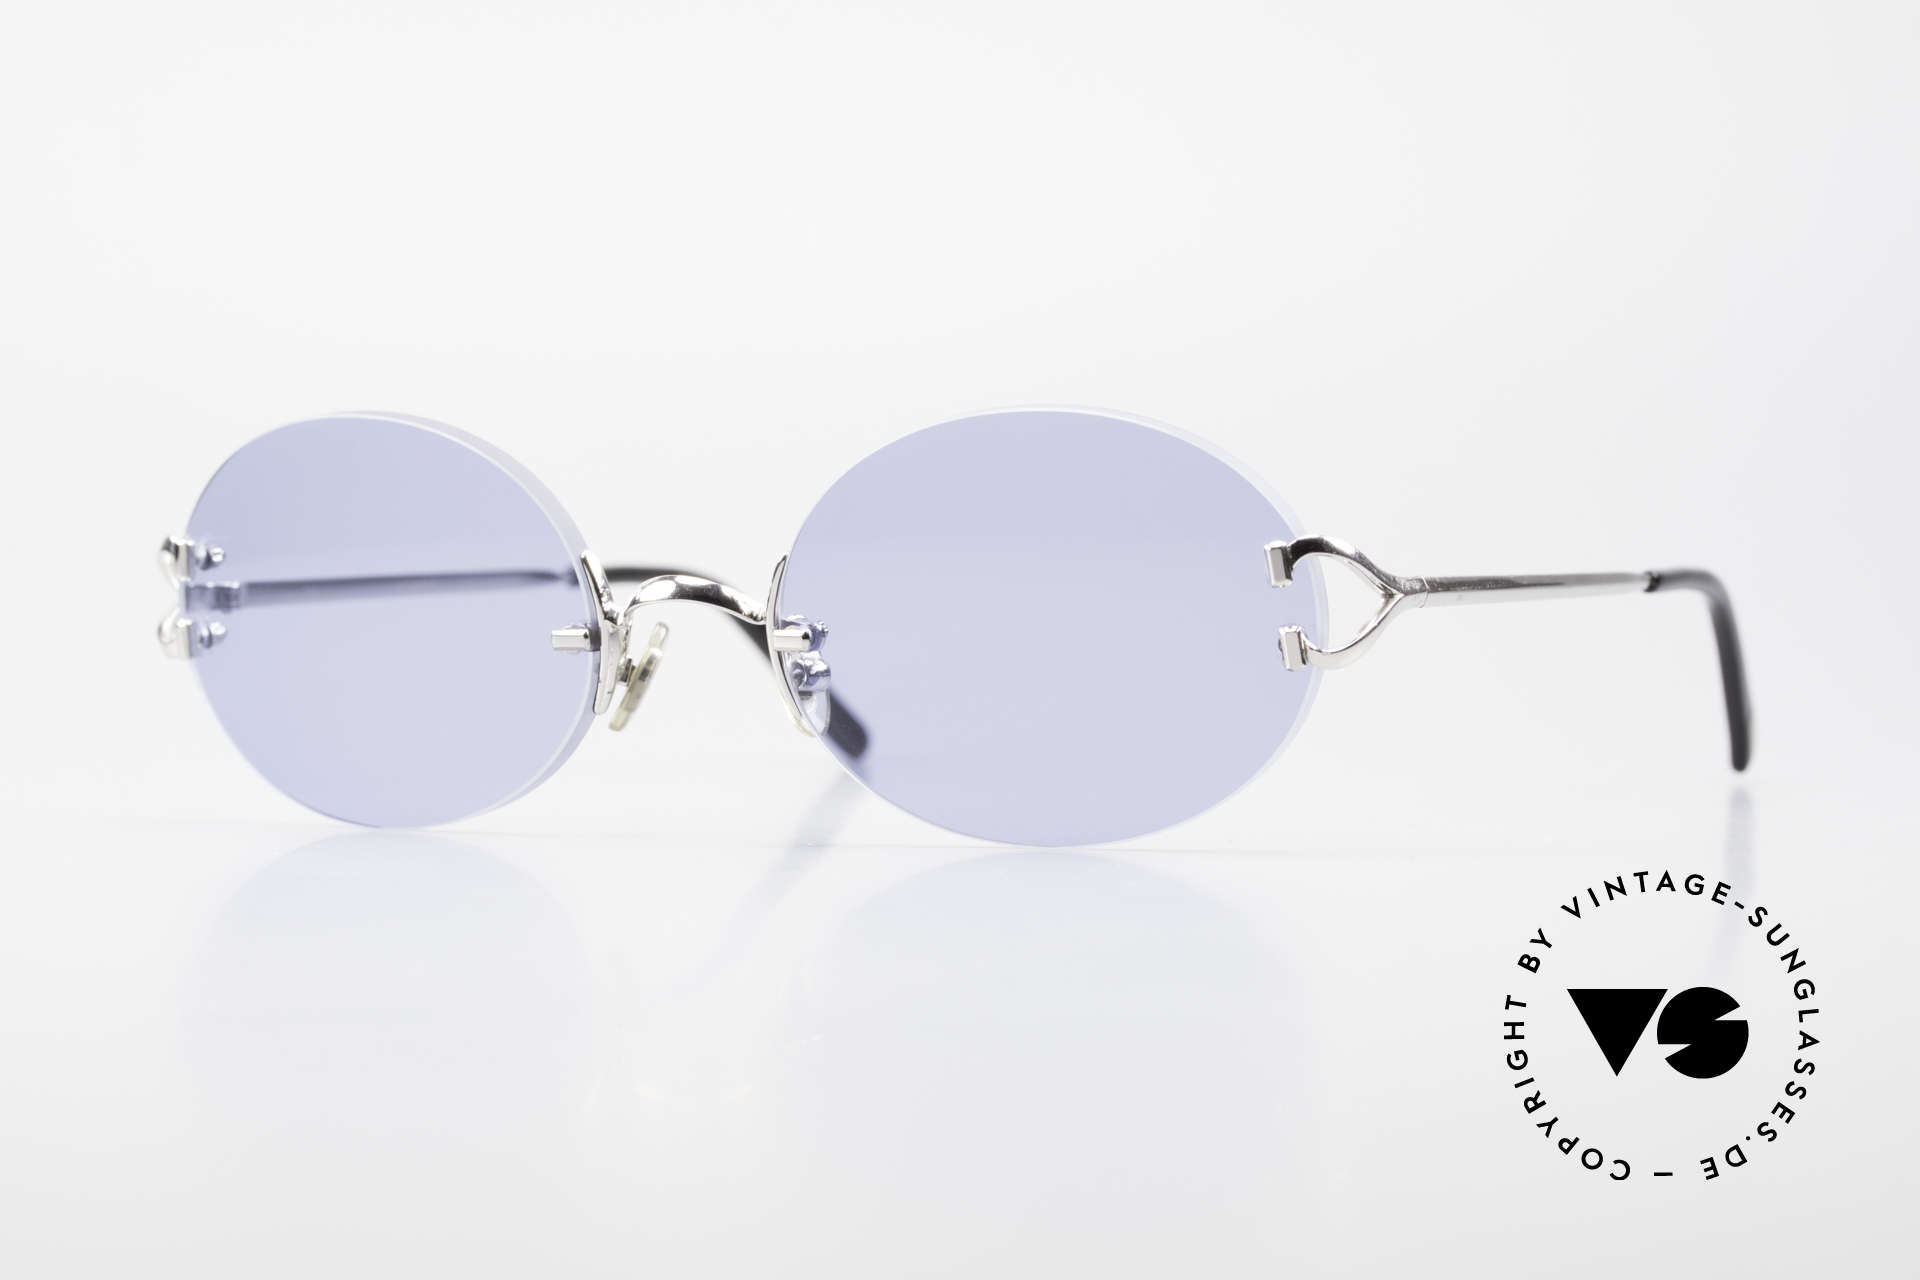 Cartier Rimless Giverny Oval Rimless Luxury Shades, noble rimless Cartier luxury sunglasses from 1999, Made for Men and Women